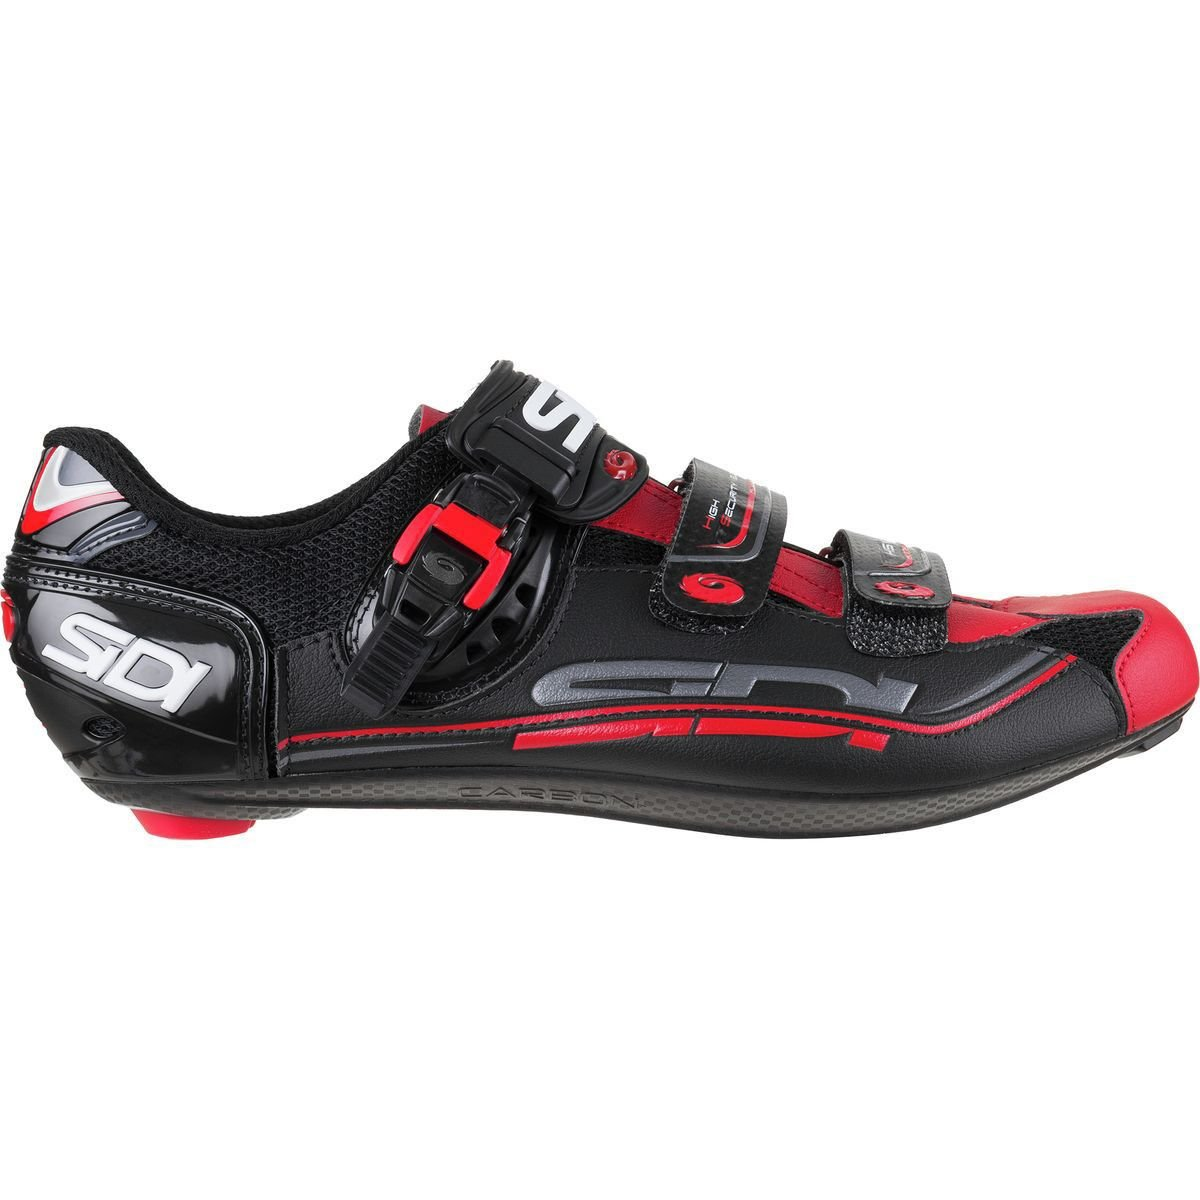 最新の激安 (シディ) Black/Red Sidi 28.5cm Genius 7 Carbon Shoe メンズ B07GFFK4M2 ロードバイクシューズBlack/Red [並行輸入品] 日本サイズ 28.5cm (44.5) Black/Red B07GFFK4M2, TASCAL:d20a6536 --- by.specpricep.ru